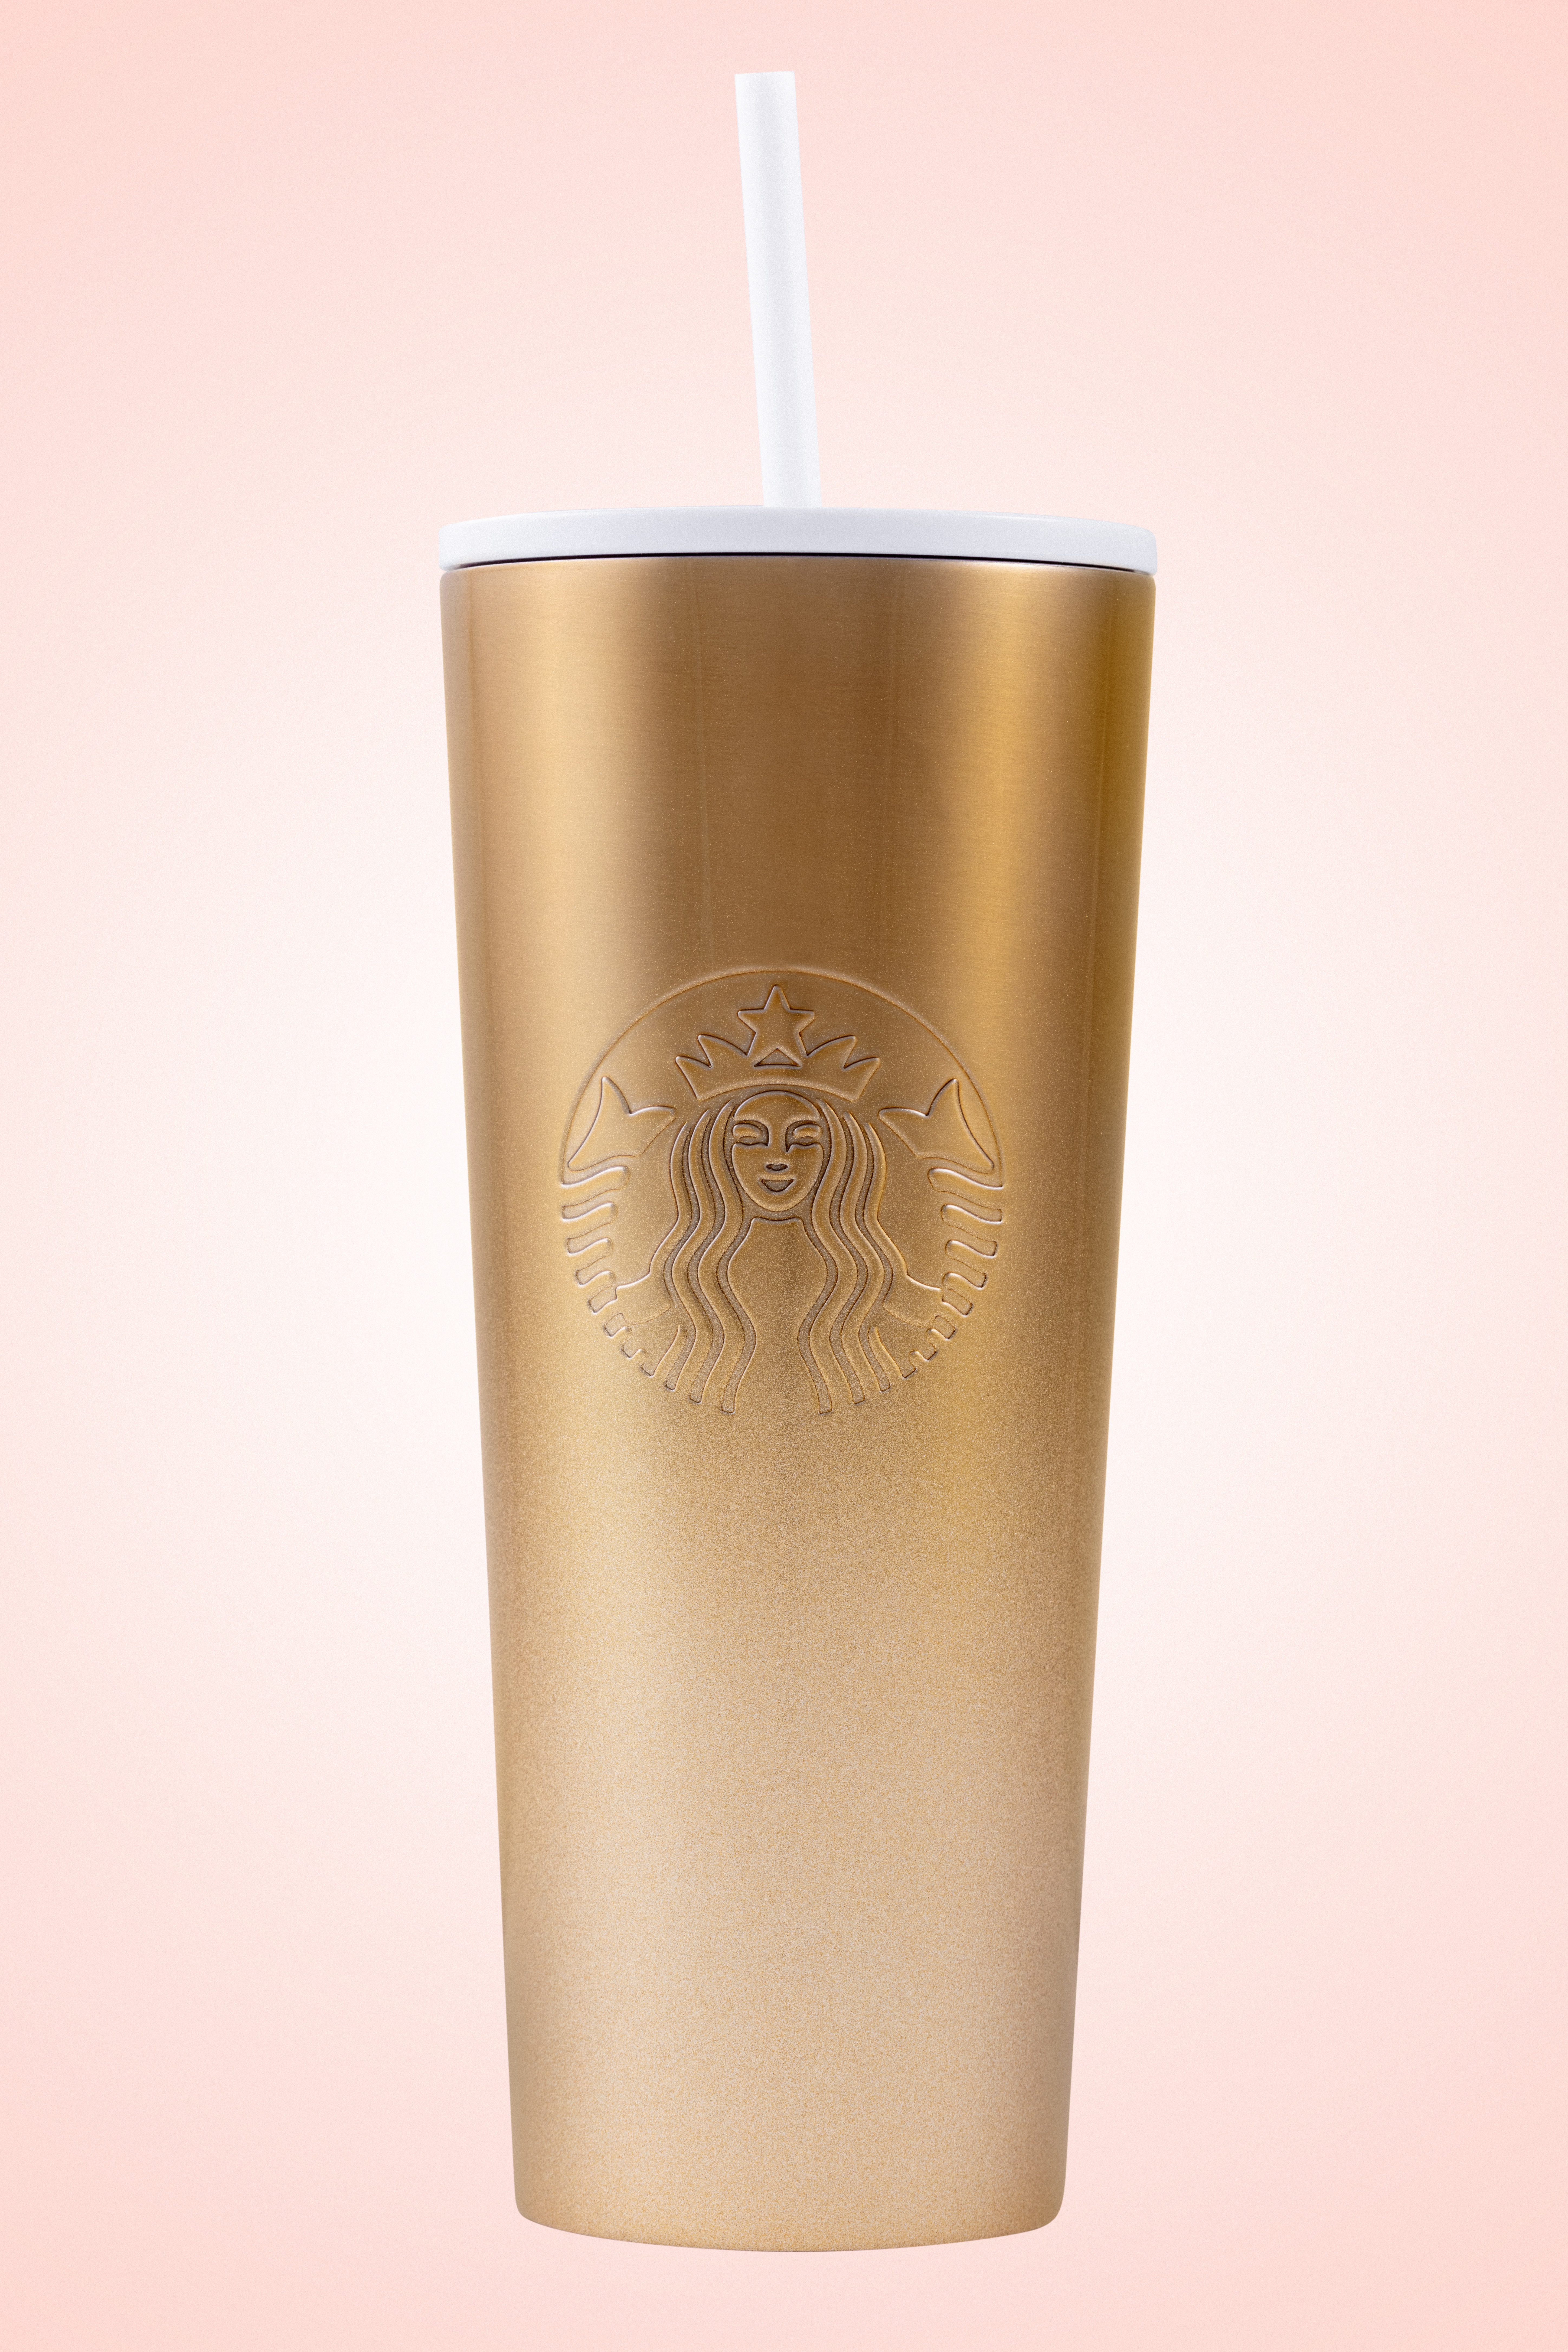 Starbucks Unveils Seasonal Gifts And Reusable Cup Sets Starbucks Stories